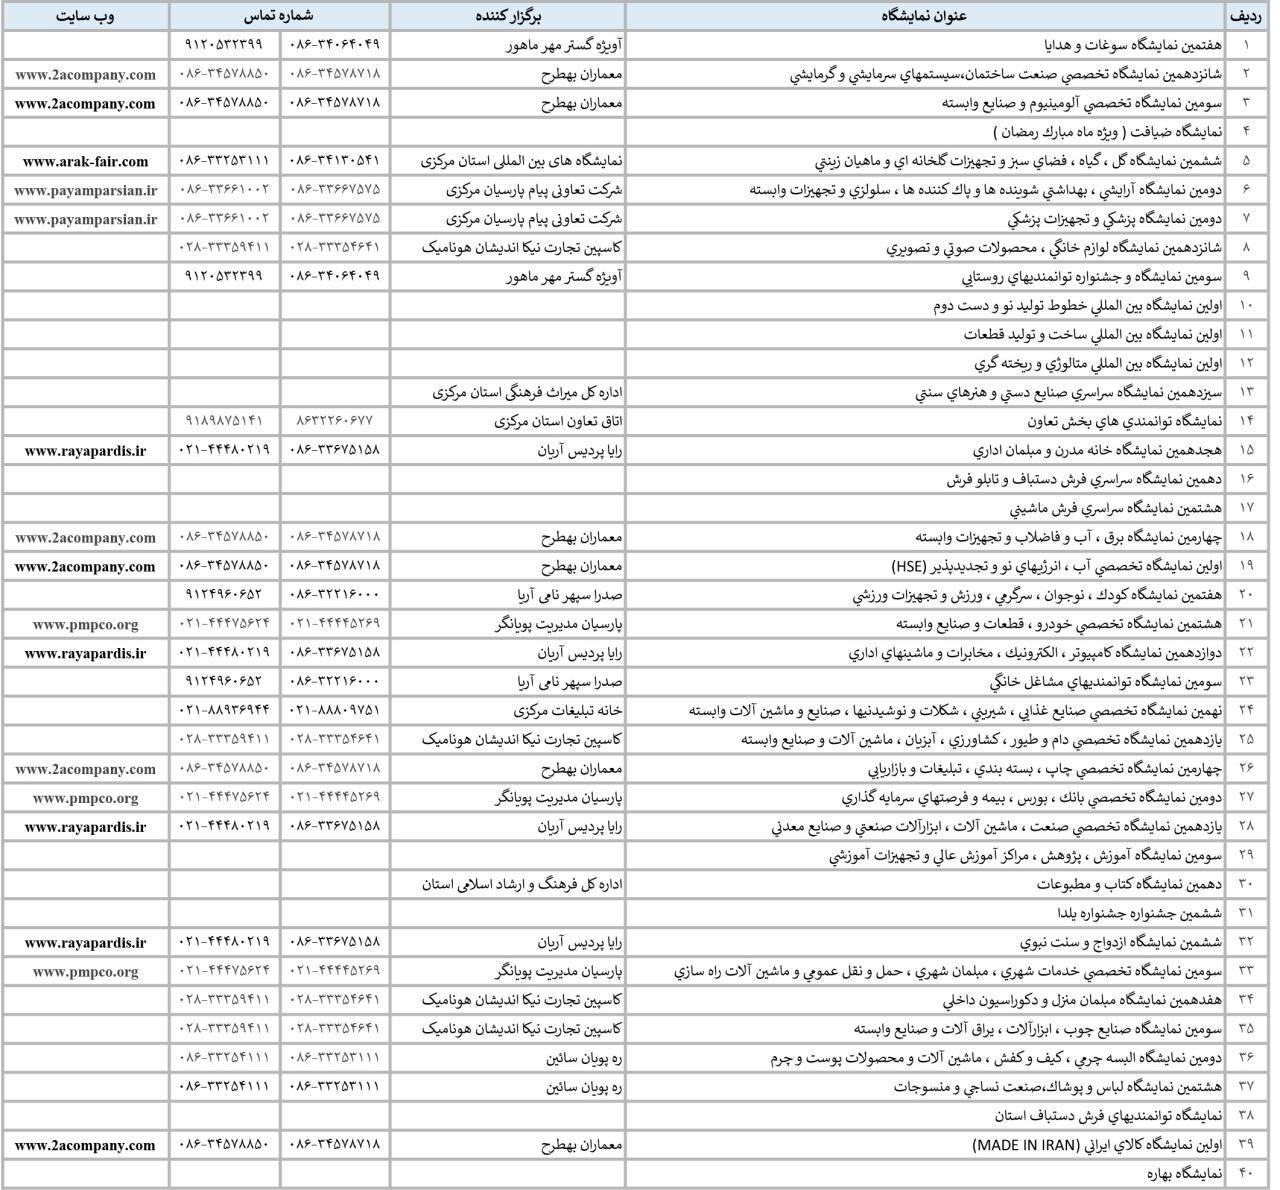 http://arak-fair.com/sites/arak-fair.com/documents/اطلاعات تماس مجریان 96/et-mojri003.jpg